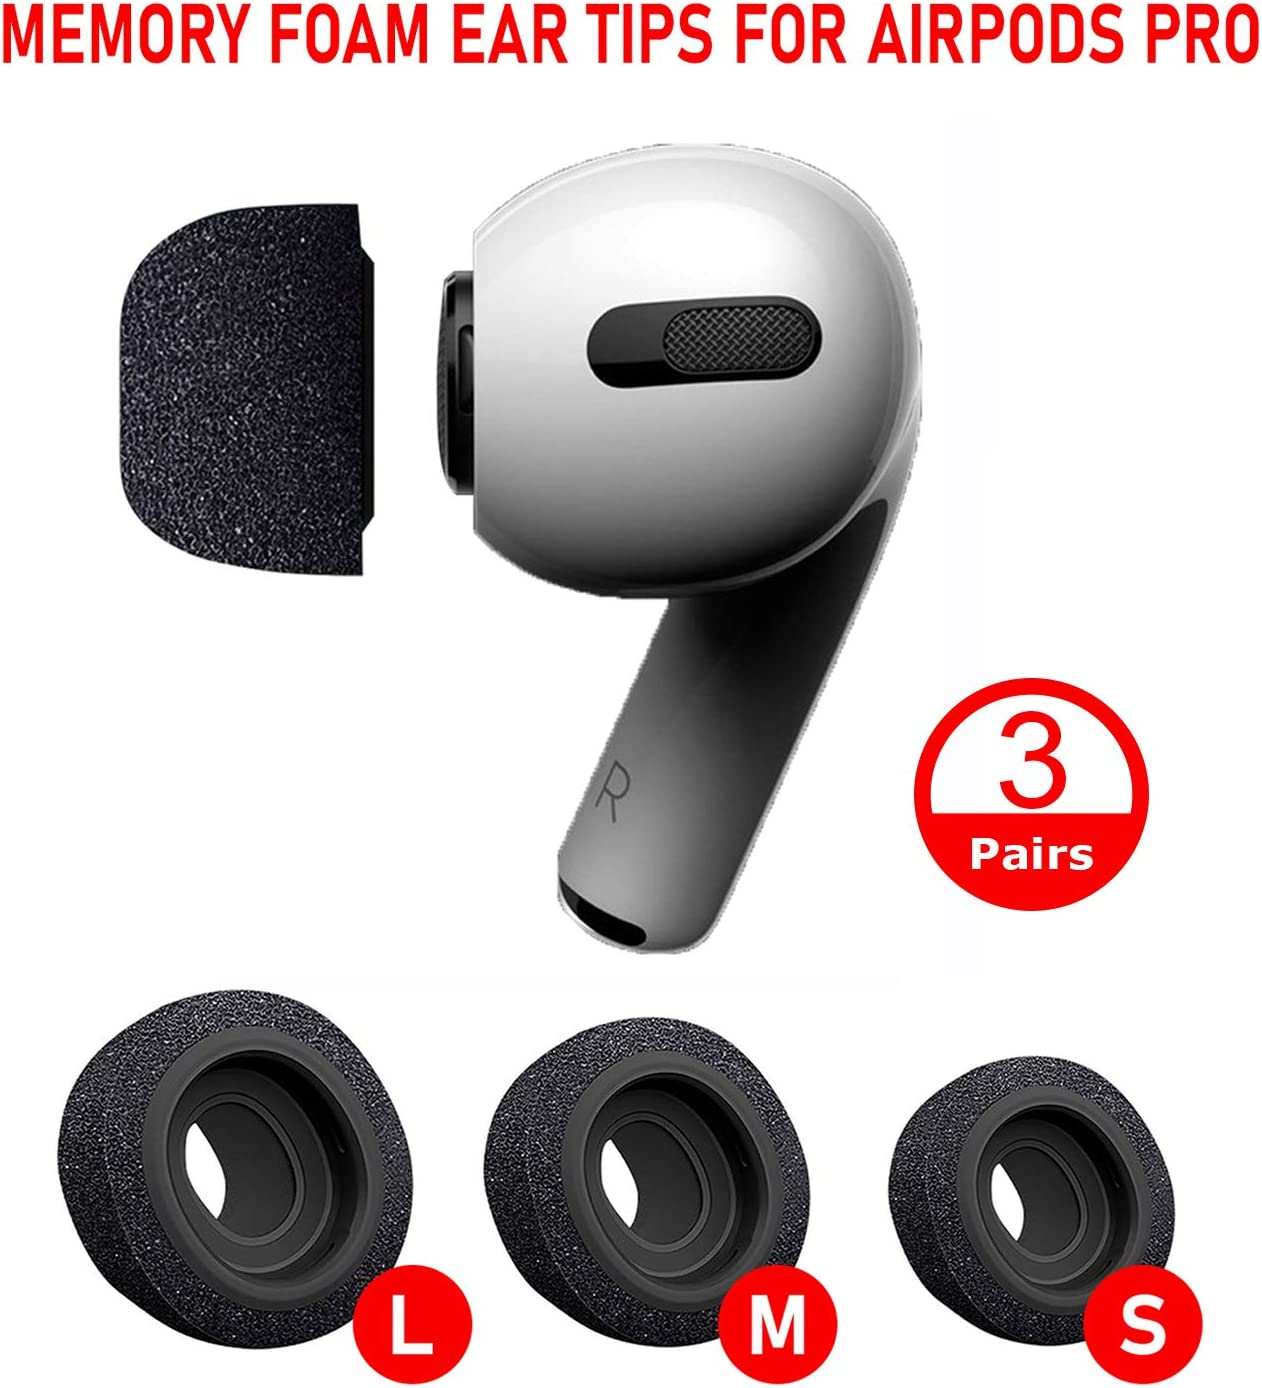 Memory Foam Ear Tips Compatible with AirPods Pro, Replacement Earbud Tips Covers, Anti-Slip Eartips, 3 Pairs (S, M, L) (Black)